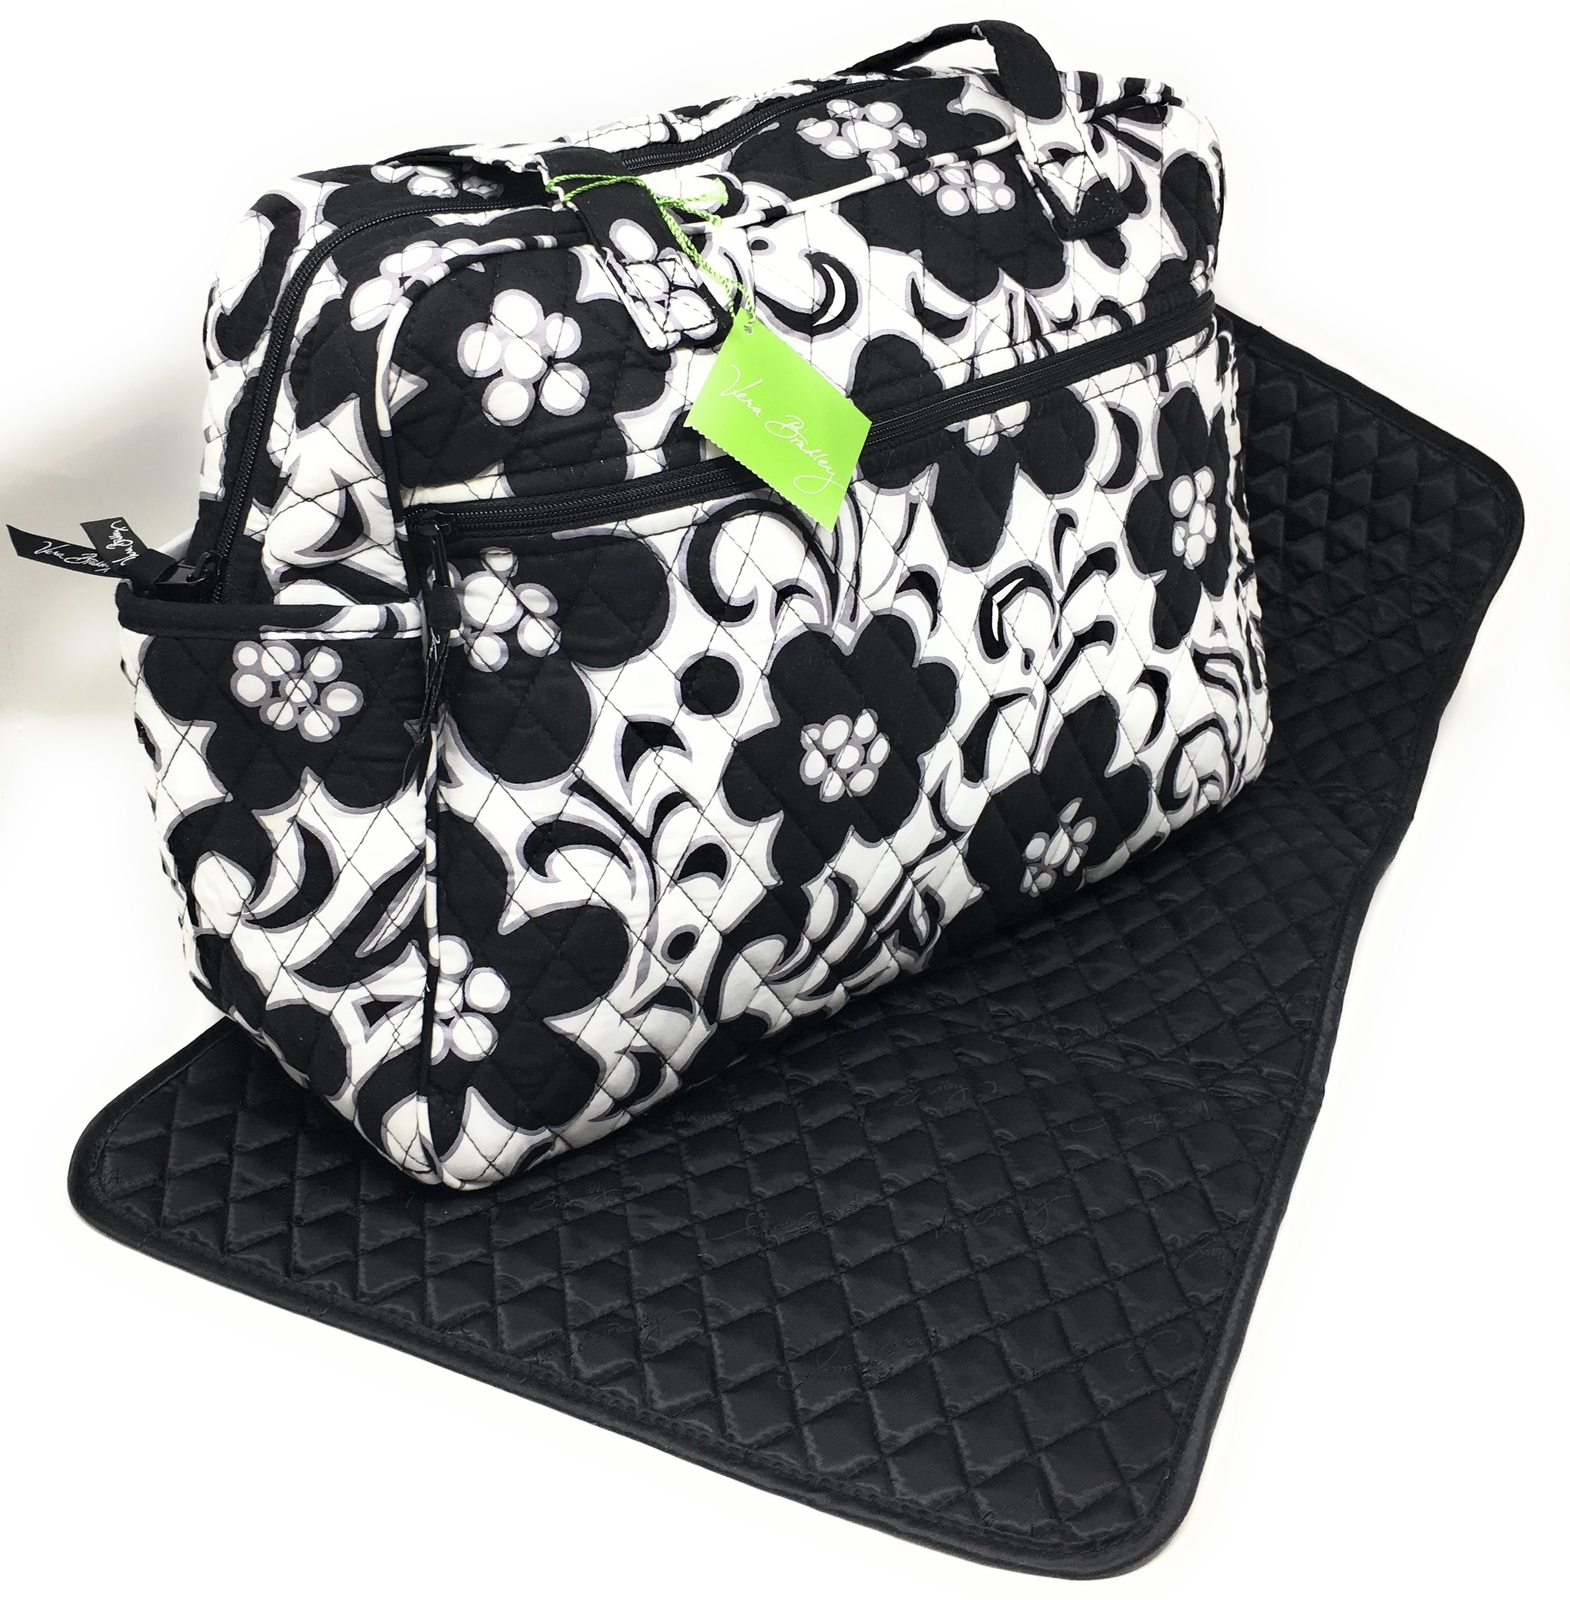 Vera Bradley Baby Bag / Diaper Bag Night & Day with Black Interior - NWT - $69.95